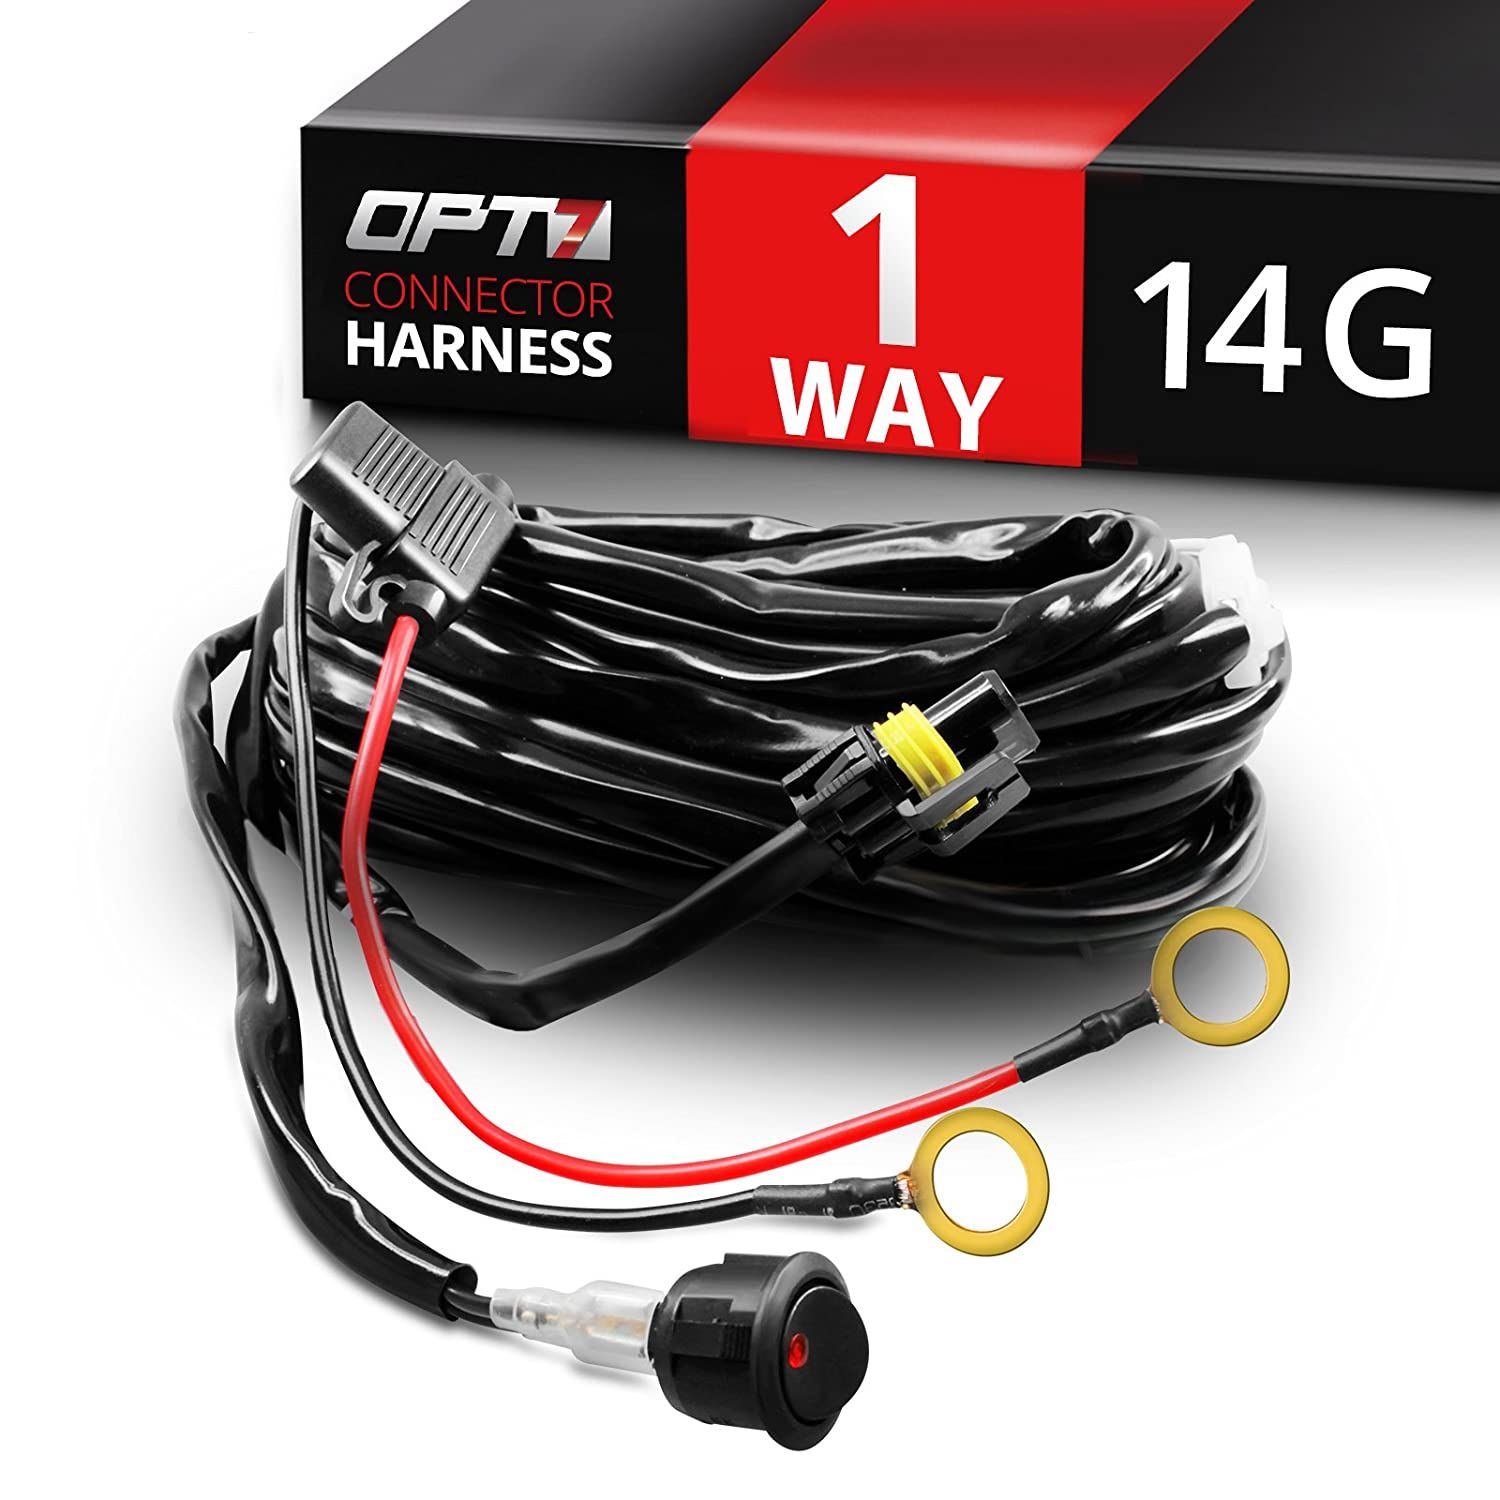 71vzZ28pwbL._SL1500_ amazon com opt7 led light bar wiring harness 14 gauge 380w wiring led light bar wiring harness kit at creativeand.co